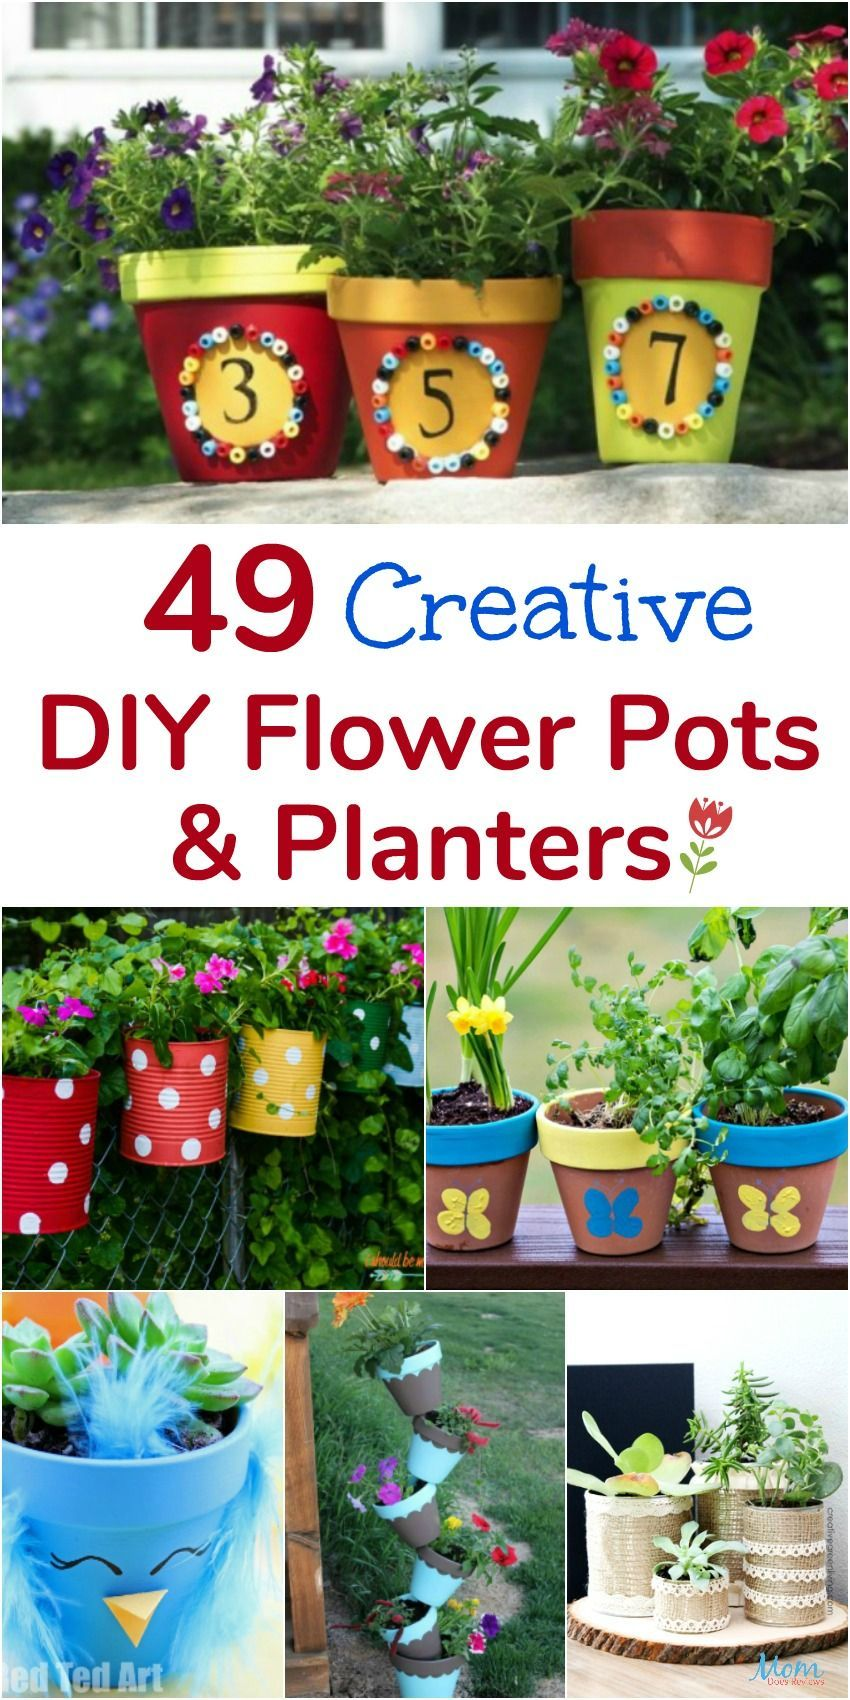 49 Creative Diy Flower Pots And Planters That Are Fun And Unique Jardineria Diy Flower Pots Unique Flower Pots Flower Pots